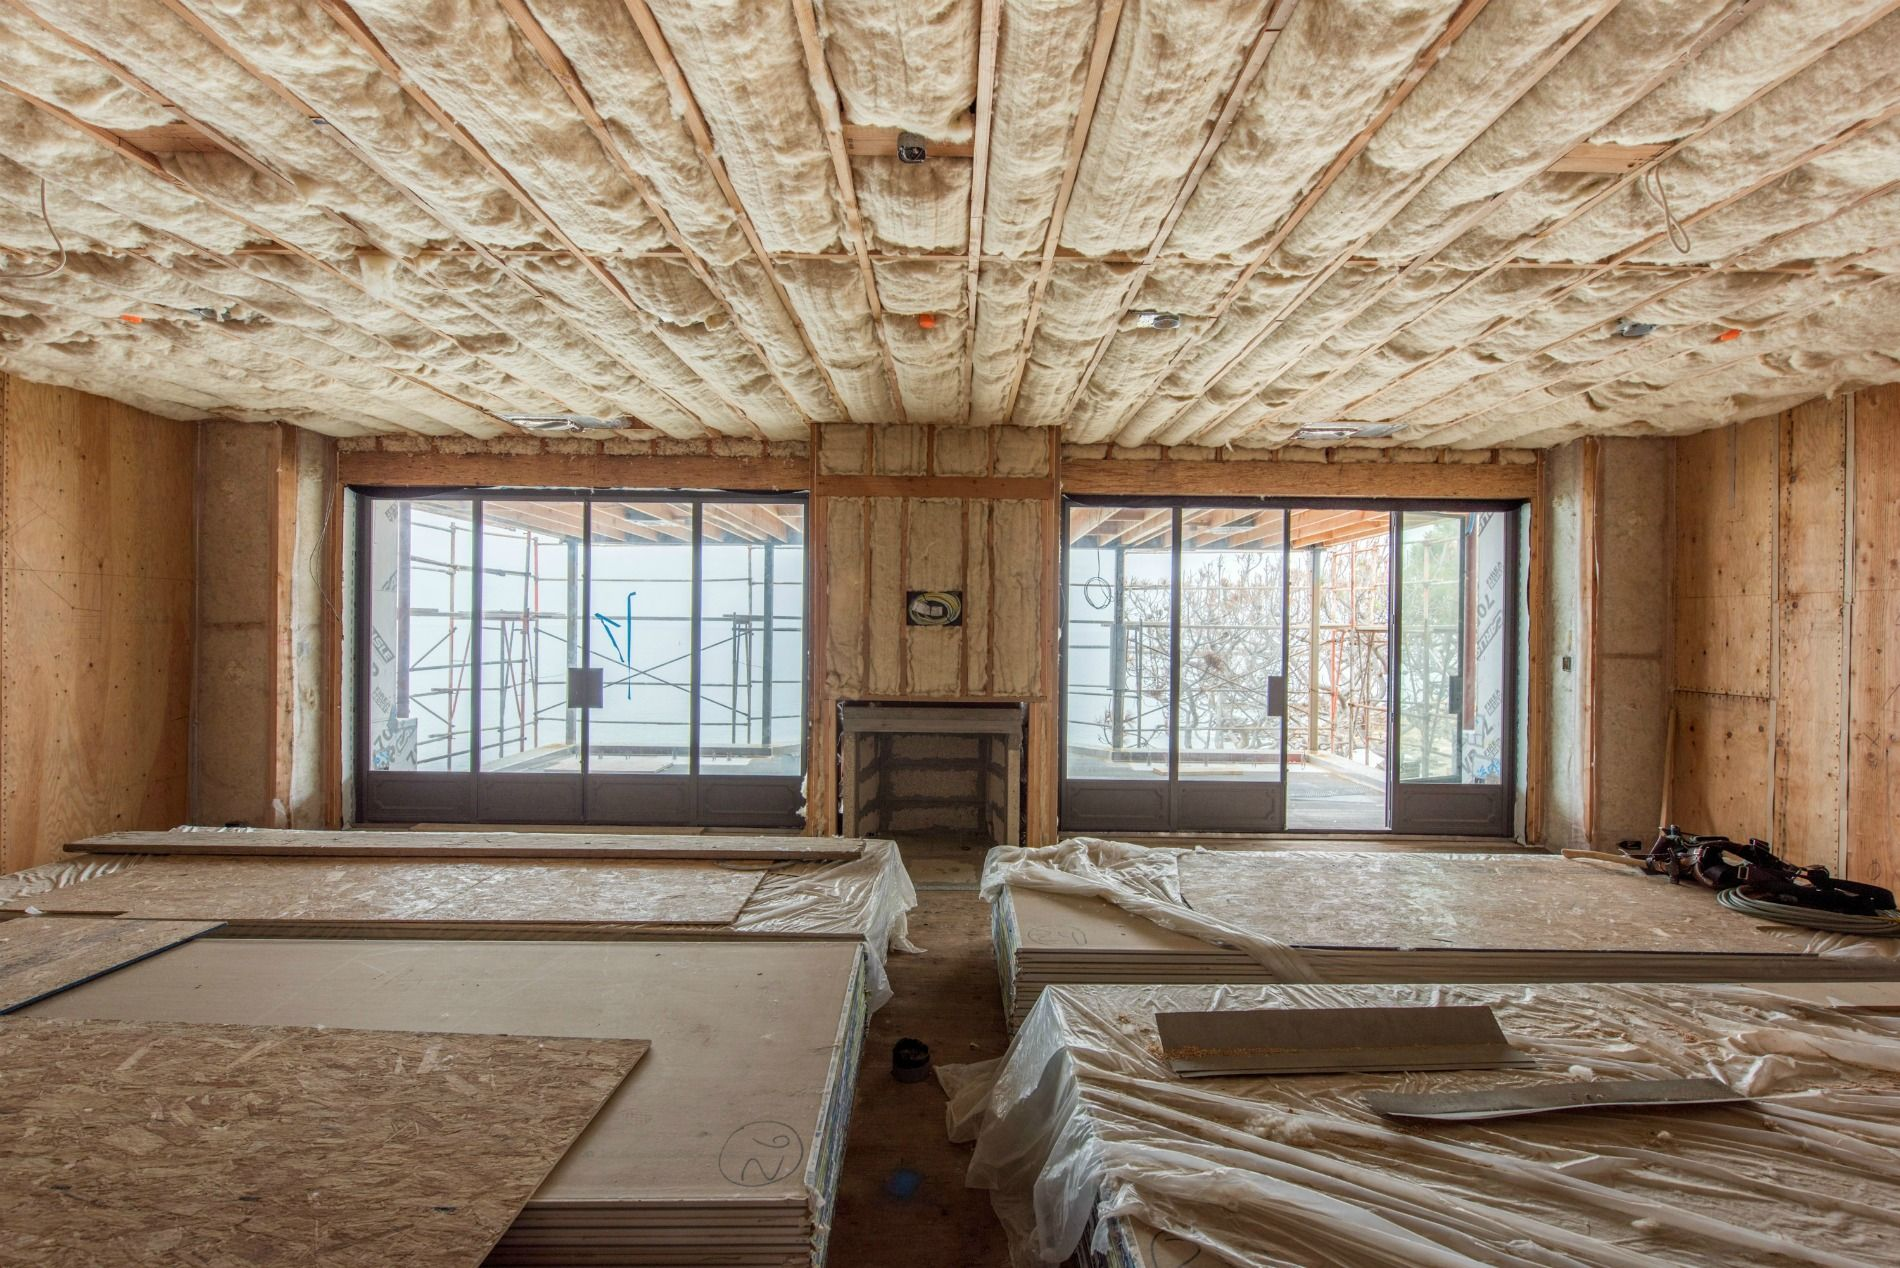 Insulating Homes With Natural Sheep S Wool Sustainable Building Materials House Heating Building Materials